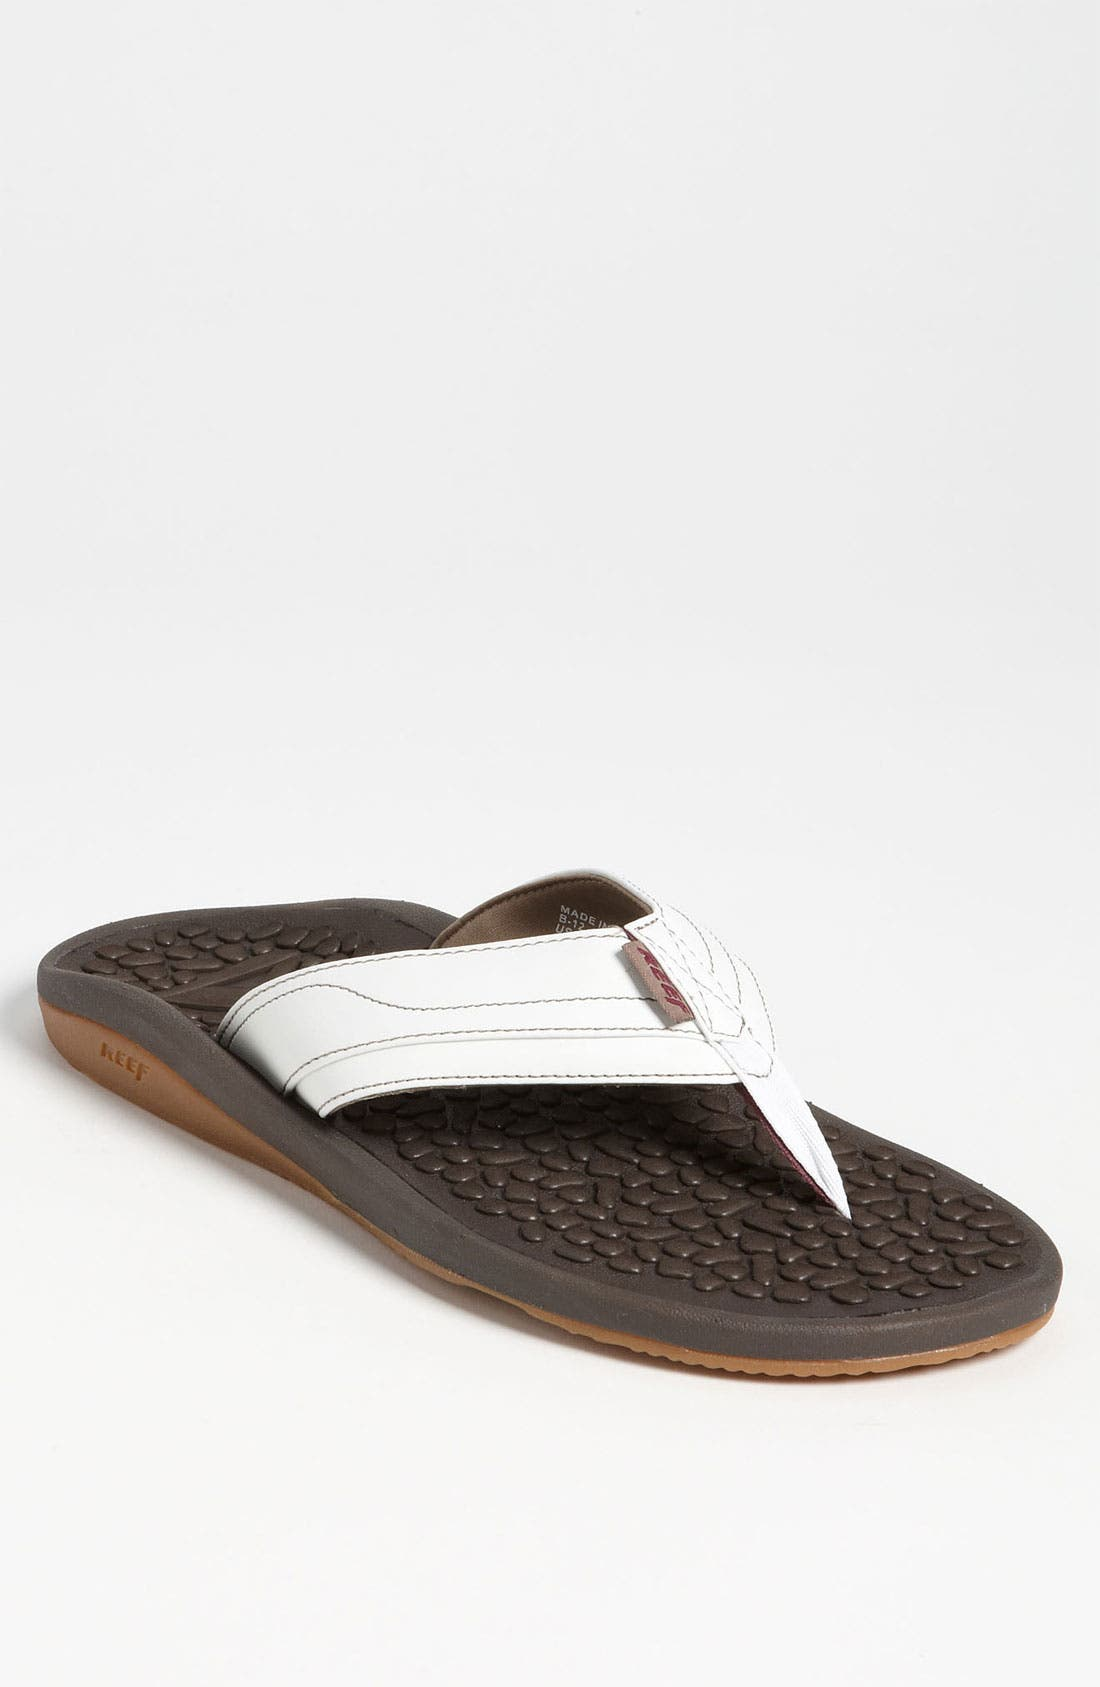 Main Image - Reef 'Playa' Flip Flop